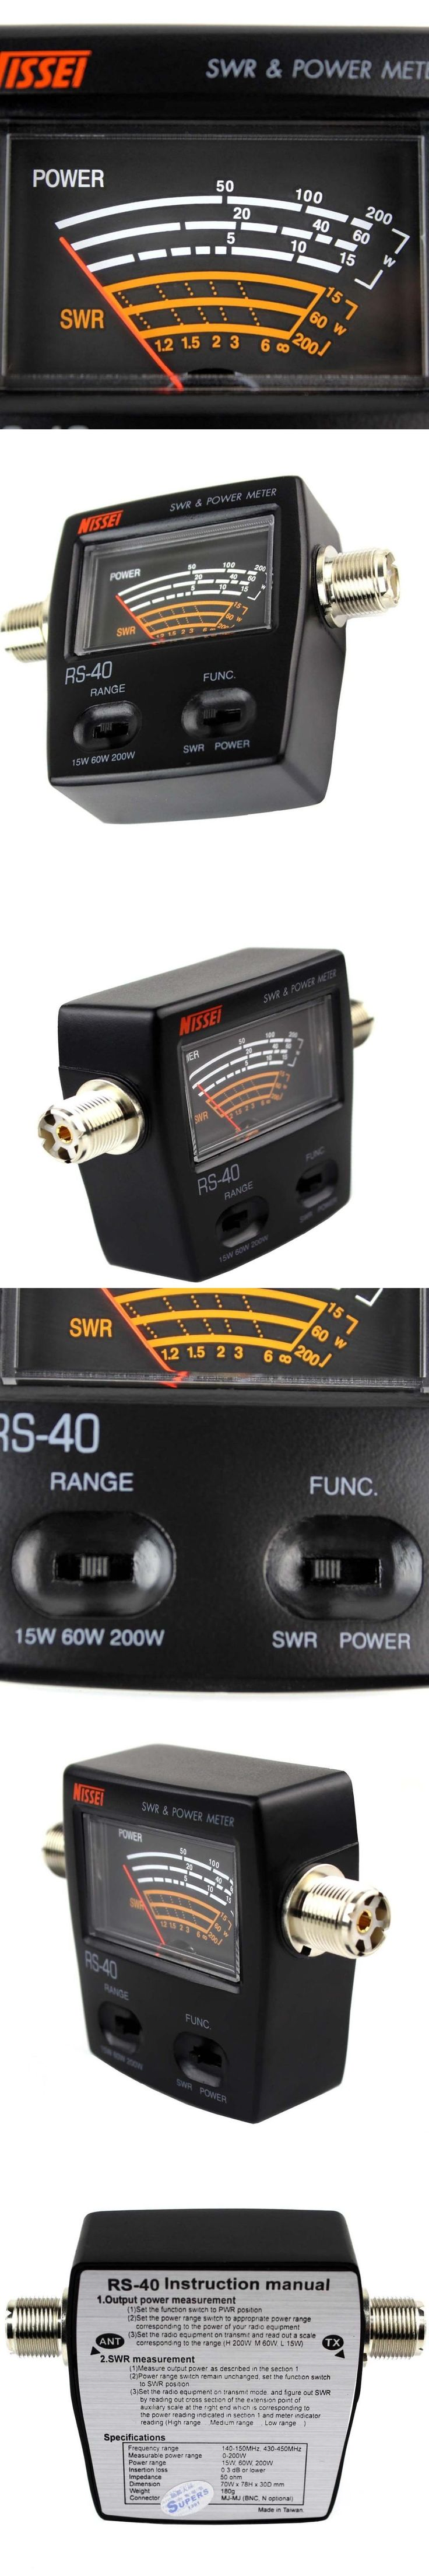 Professional UV Dual Band Standing-Wave Meter Power Meter SWR Meter for Walkie Talkie Testing SWR Power 144/430MHz 0-200W RS-40